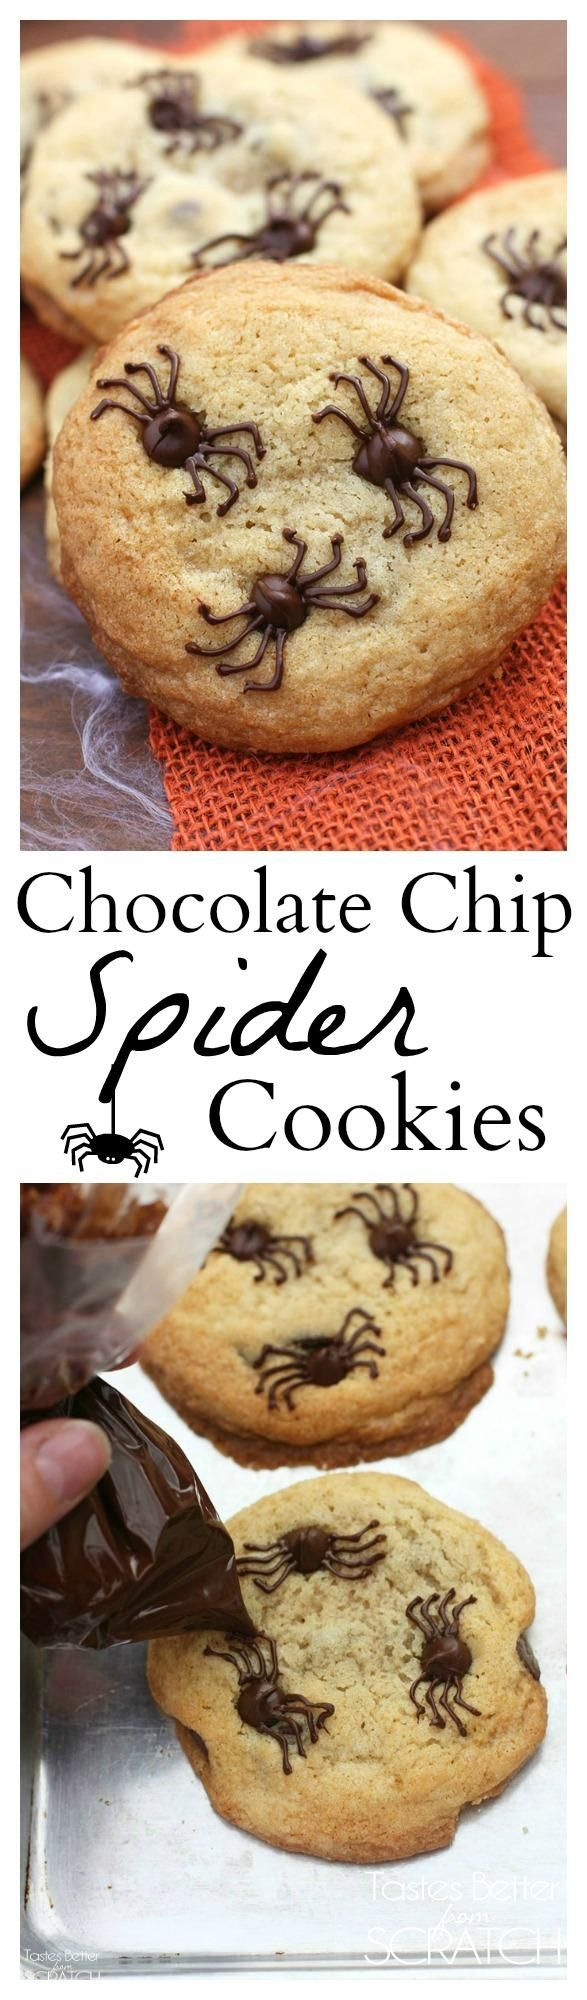 Chocolate Chip Spider Cookies make the perfect fun and easy Halloween treat! | Tastes Better From Scratch (Chocolate Muffins Decoration)